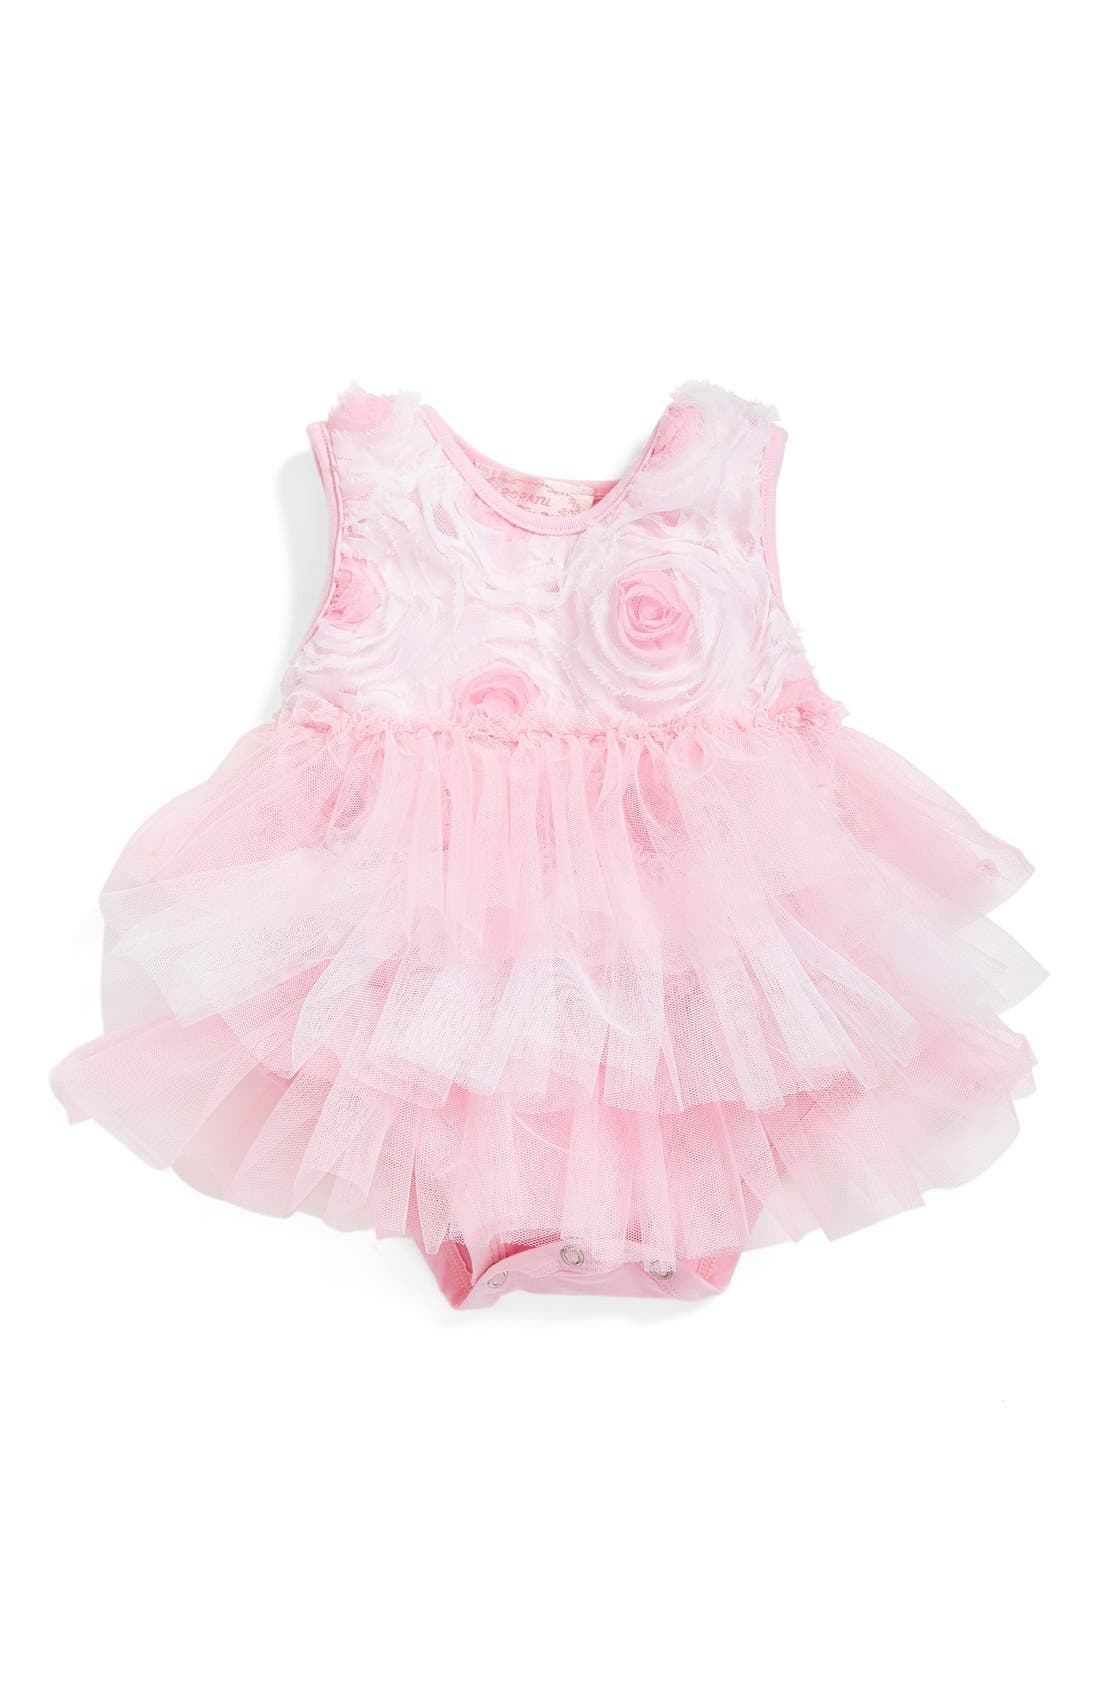 Alternate Image 1 Selected - Popatu Ribbon Rosette Ruffle Tier Bodysuit (Baby Girls)